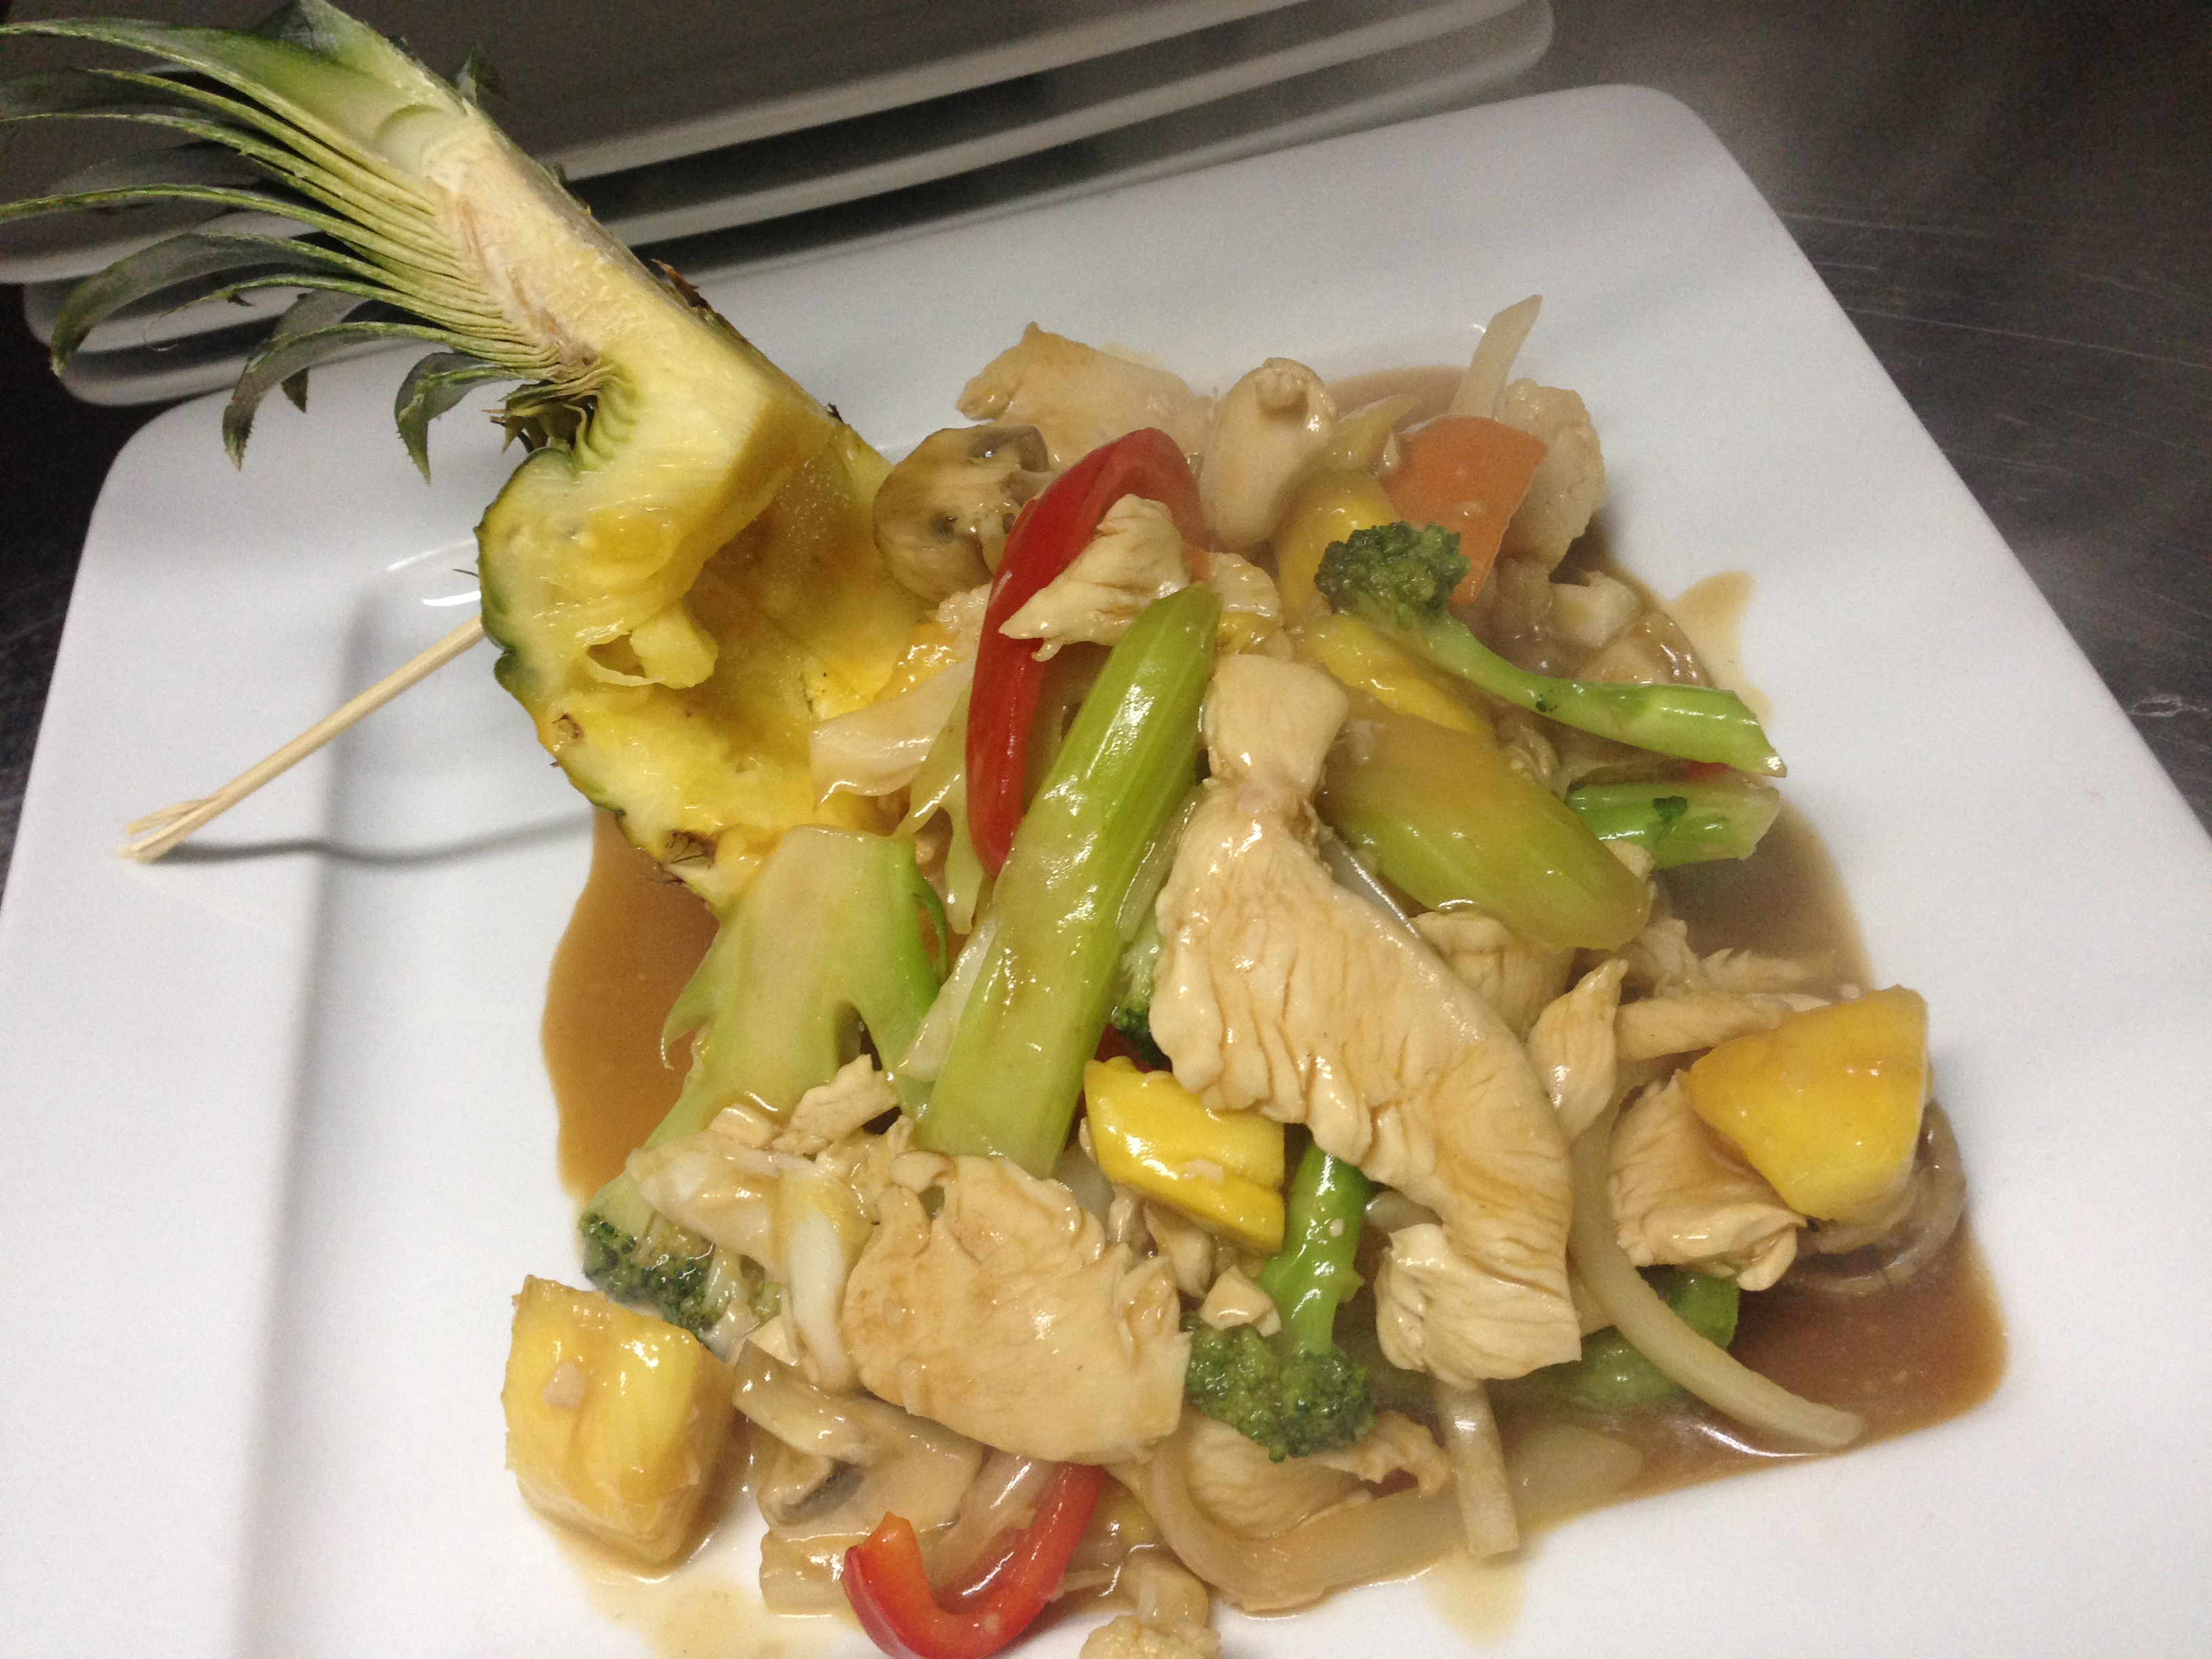 Poulet aux ananas/Pineapple chicken